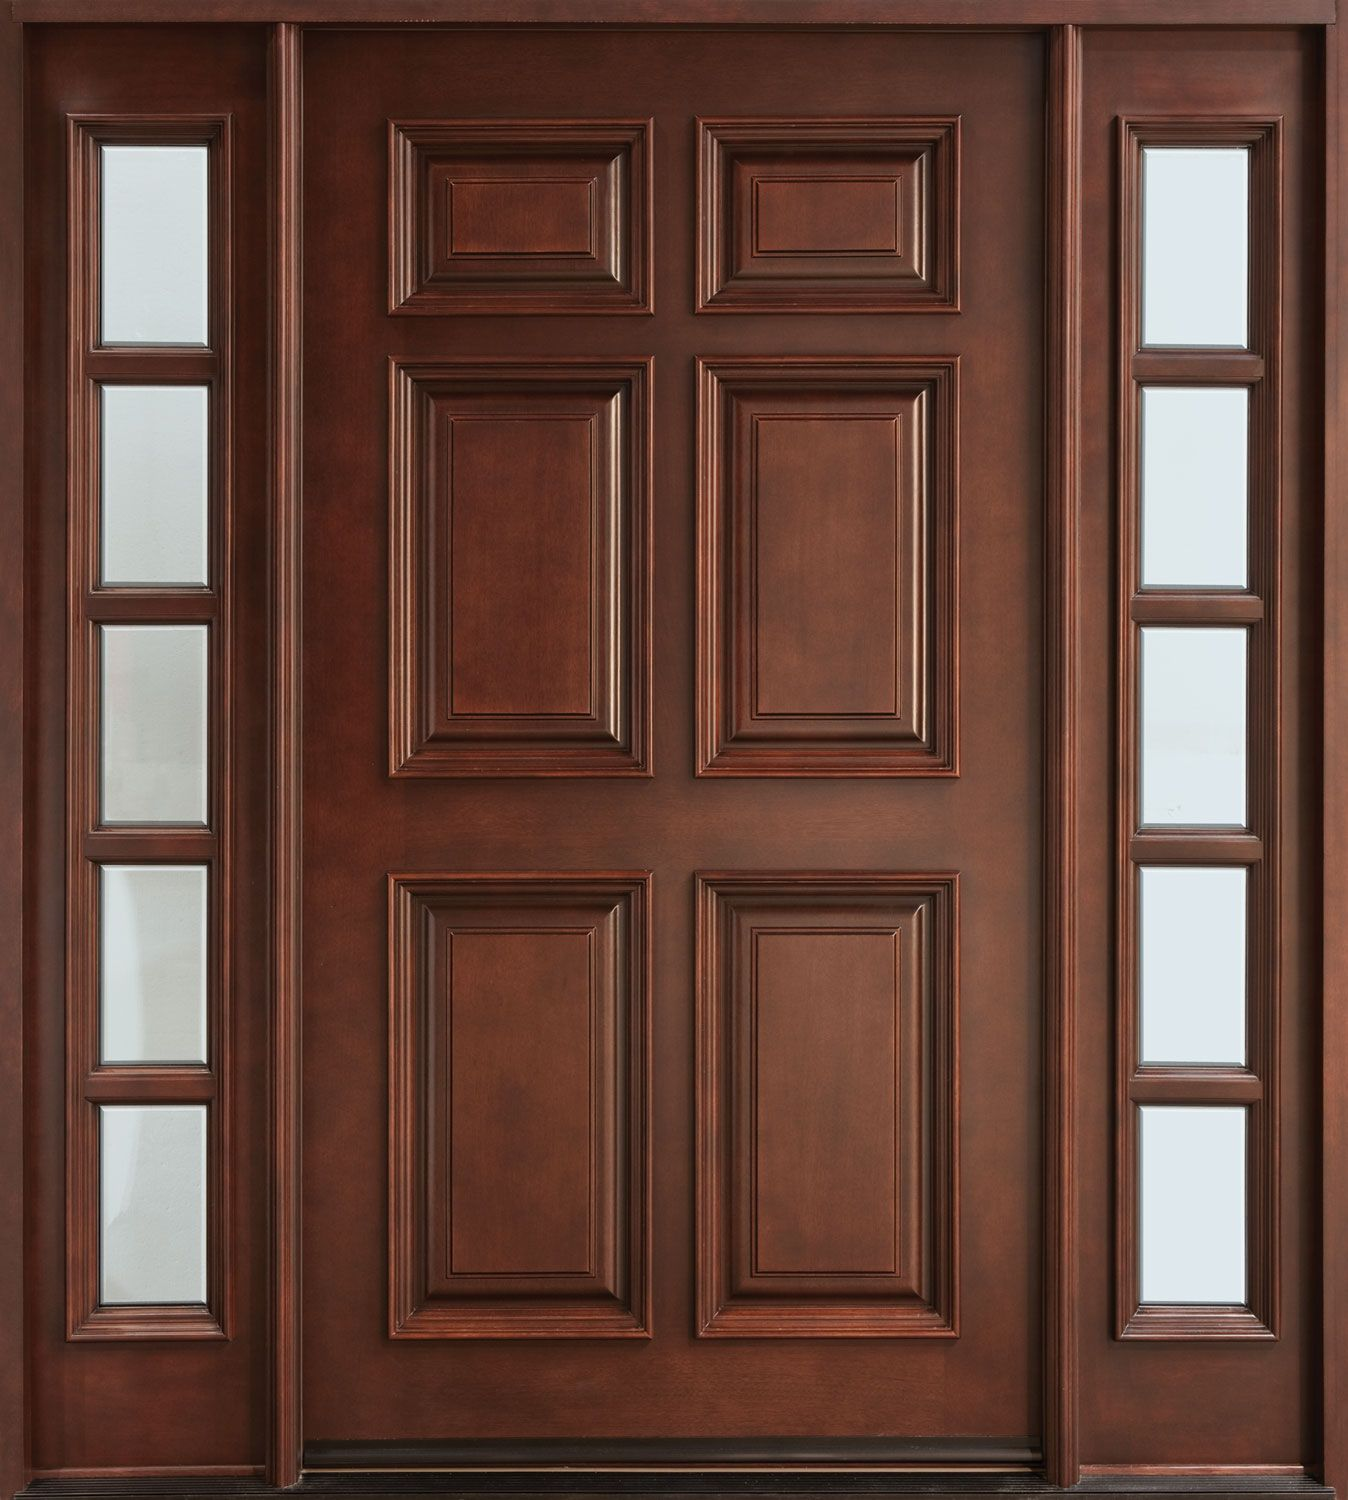 Wood Doors Simpson Door has built handcrafted solid wood doors since ...